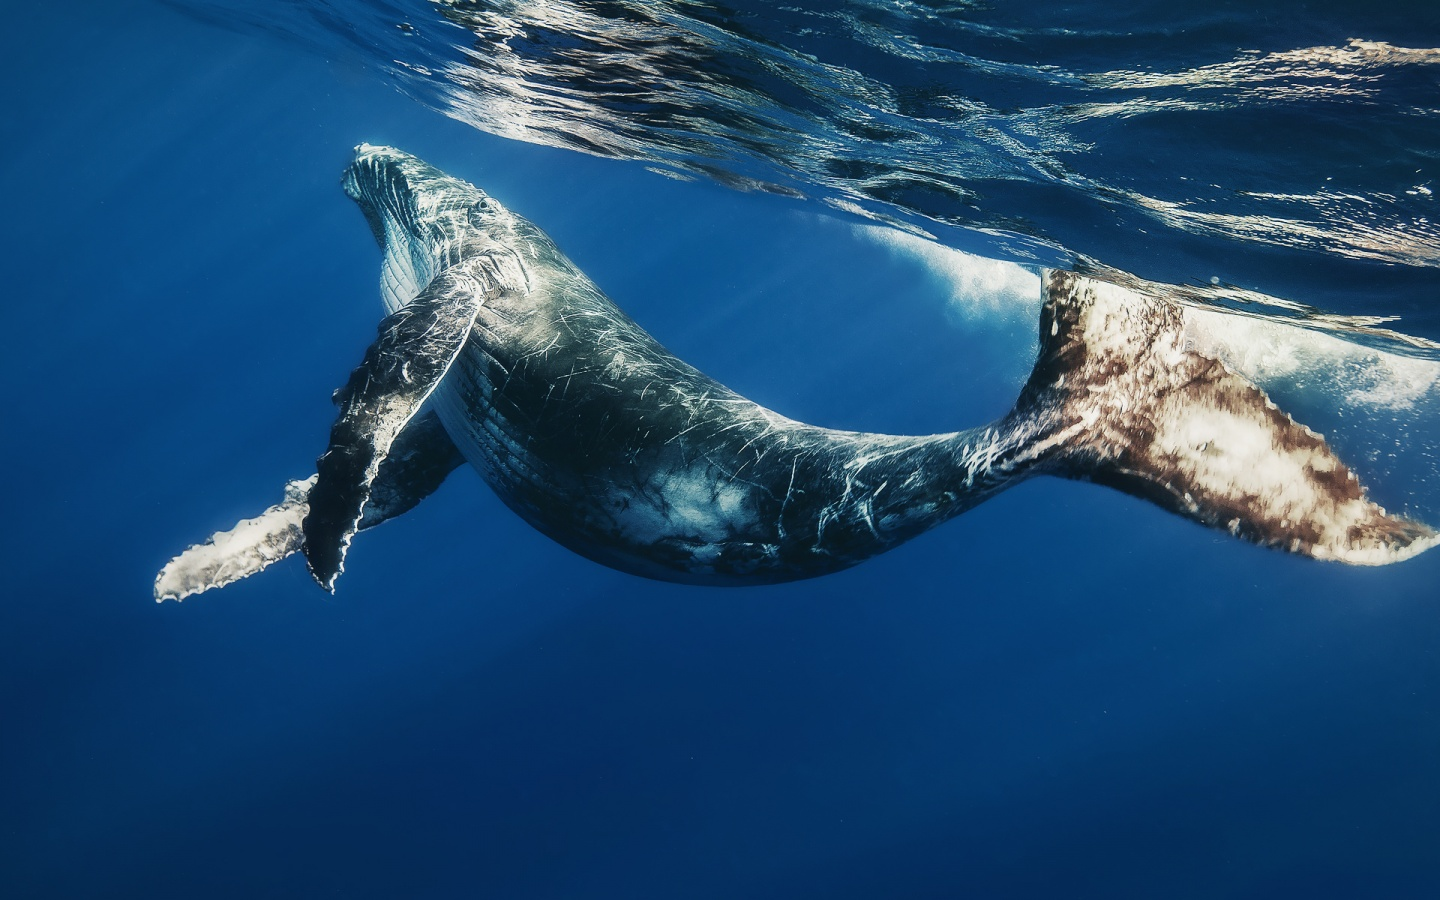 Whales are the main engineers of ocean's ecosystems, says experts